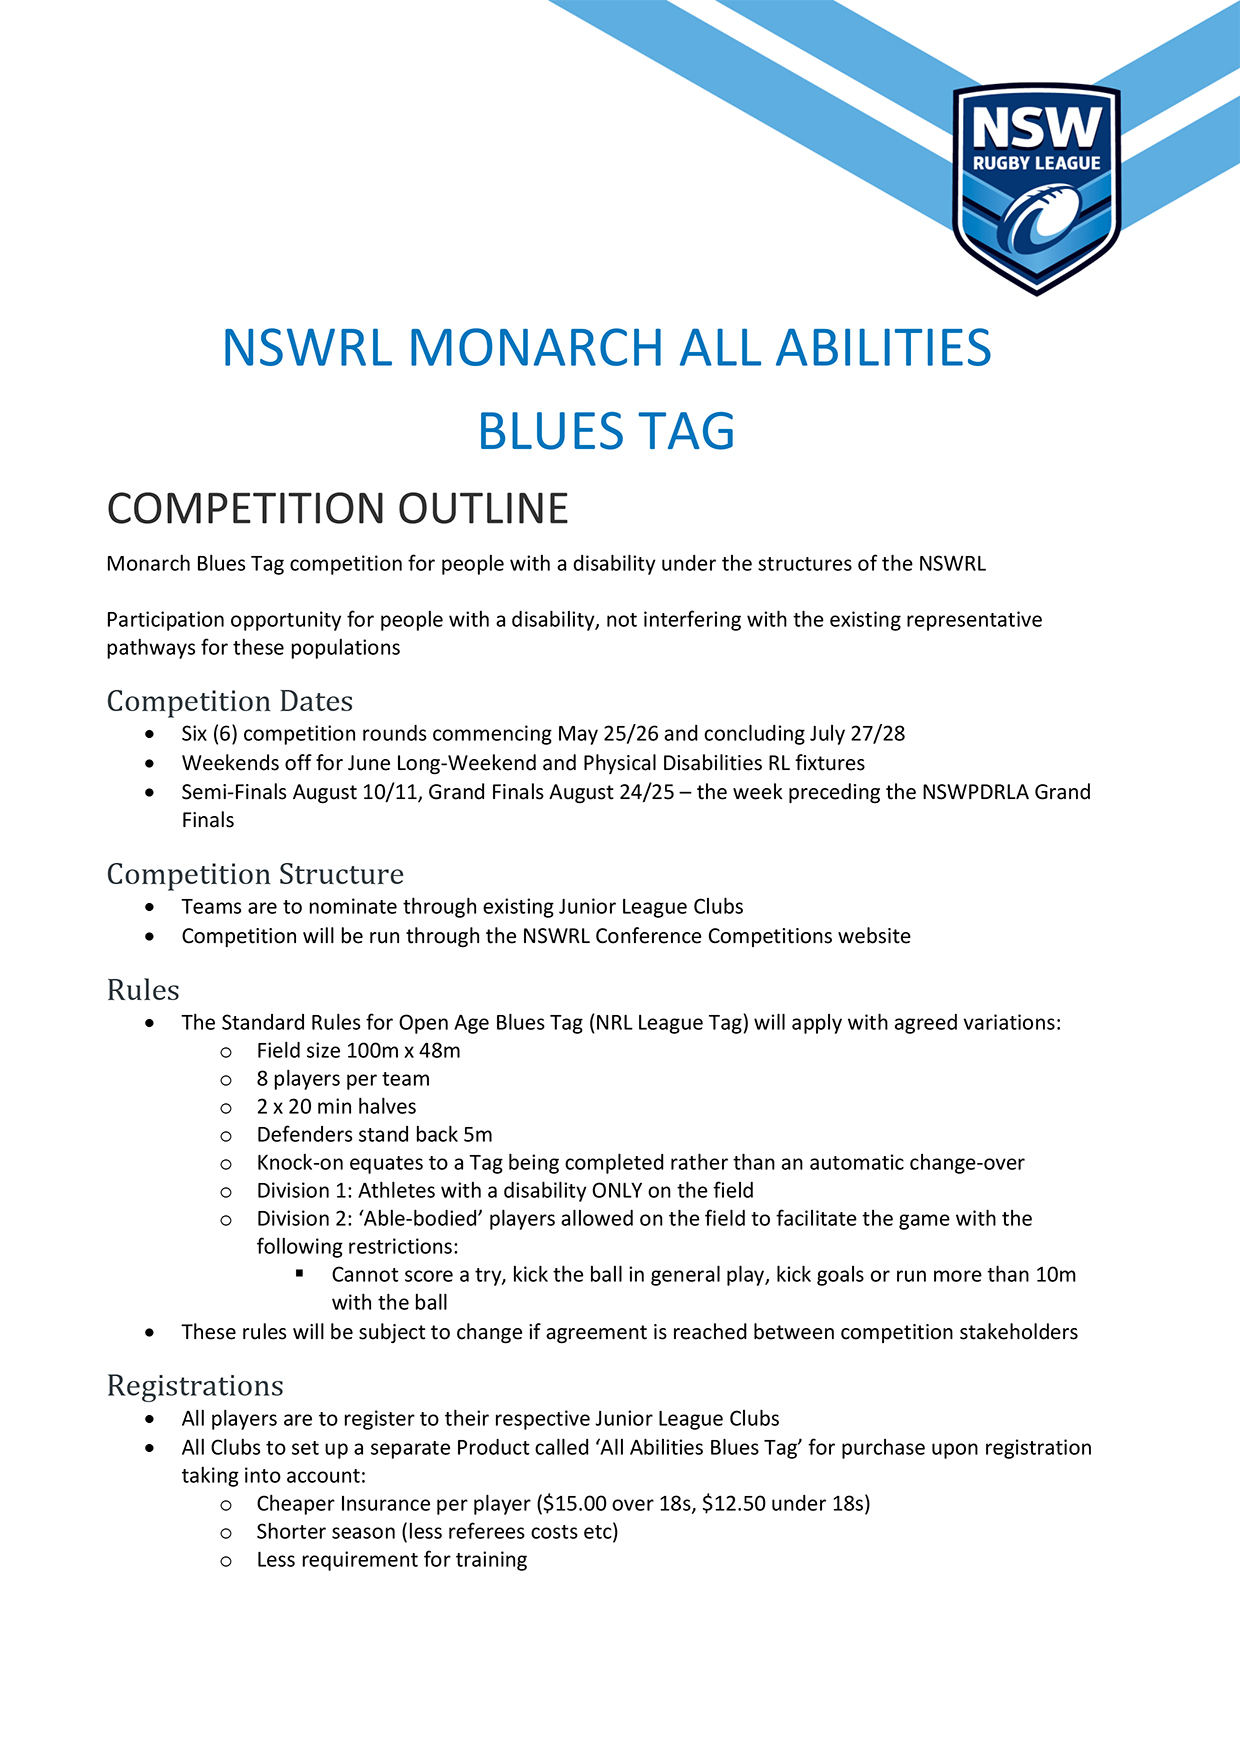 NSWRL All Abilities Blues Tag Competition Outline v1.0.jpg